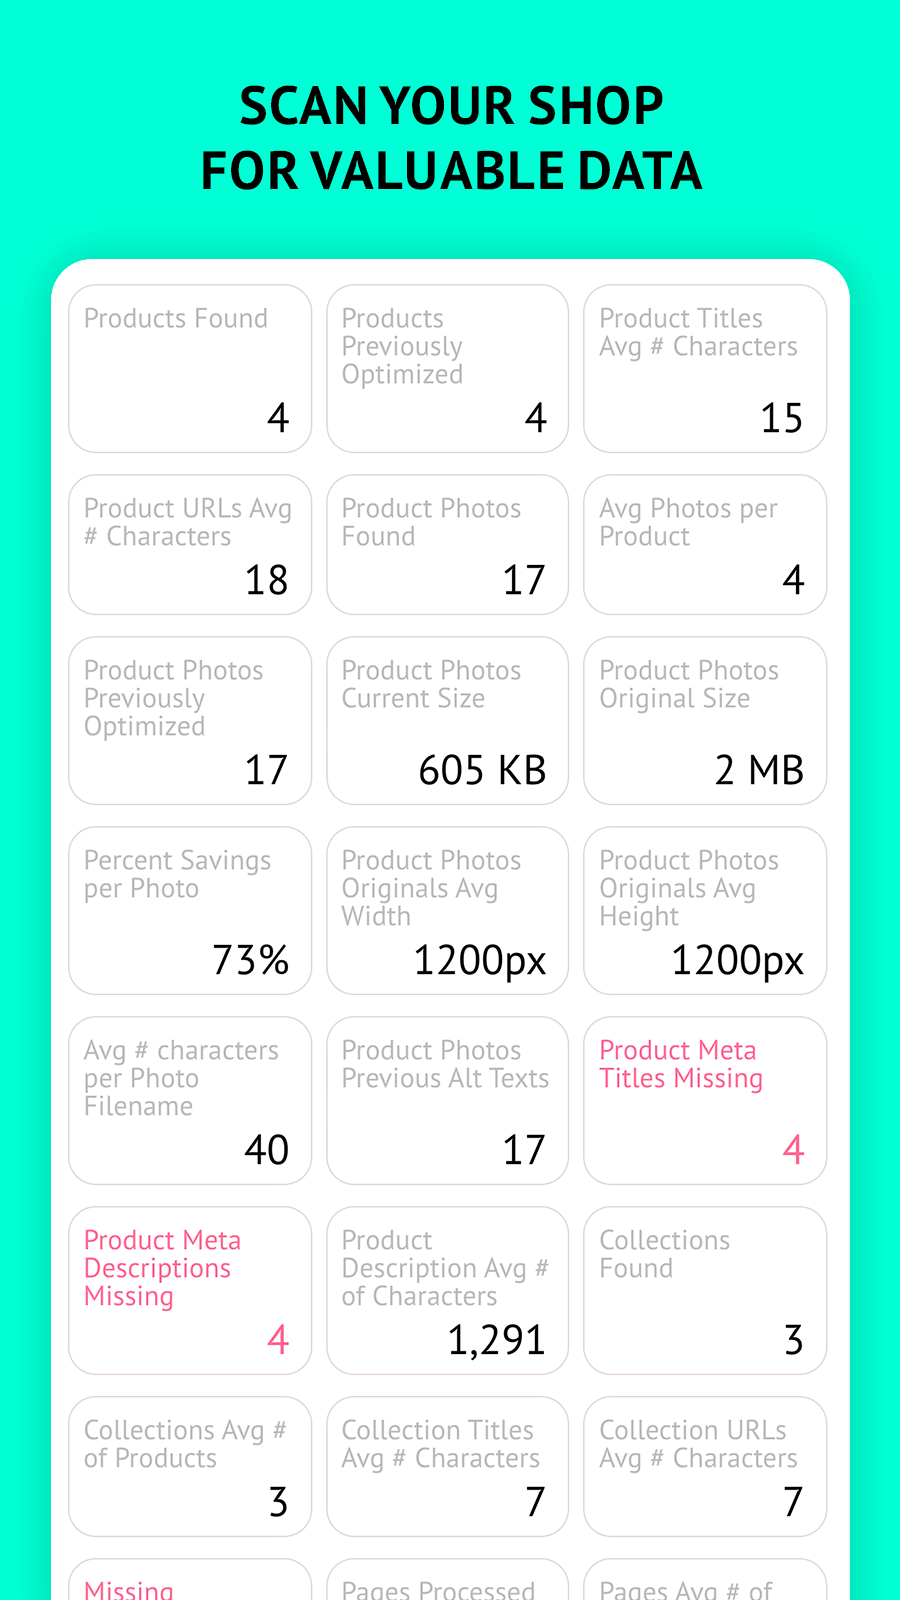 Scan your data for insights